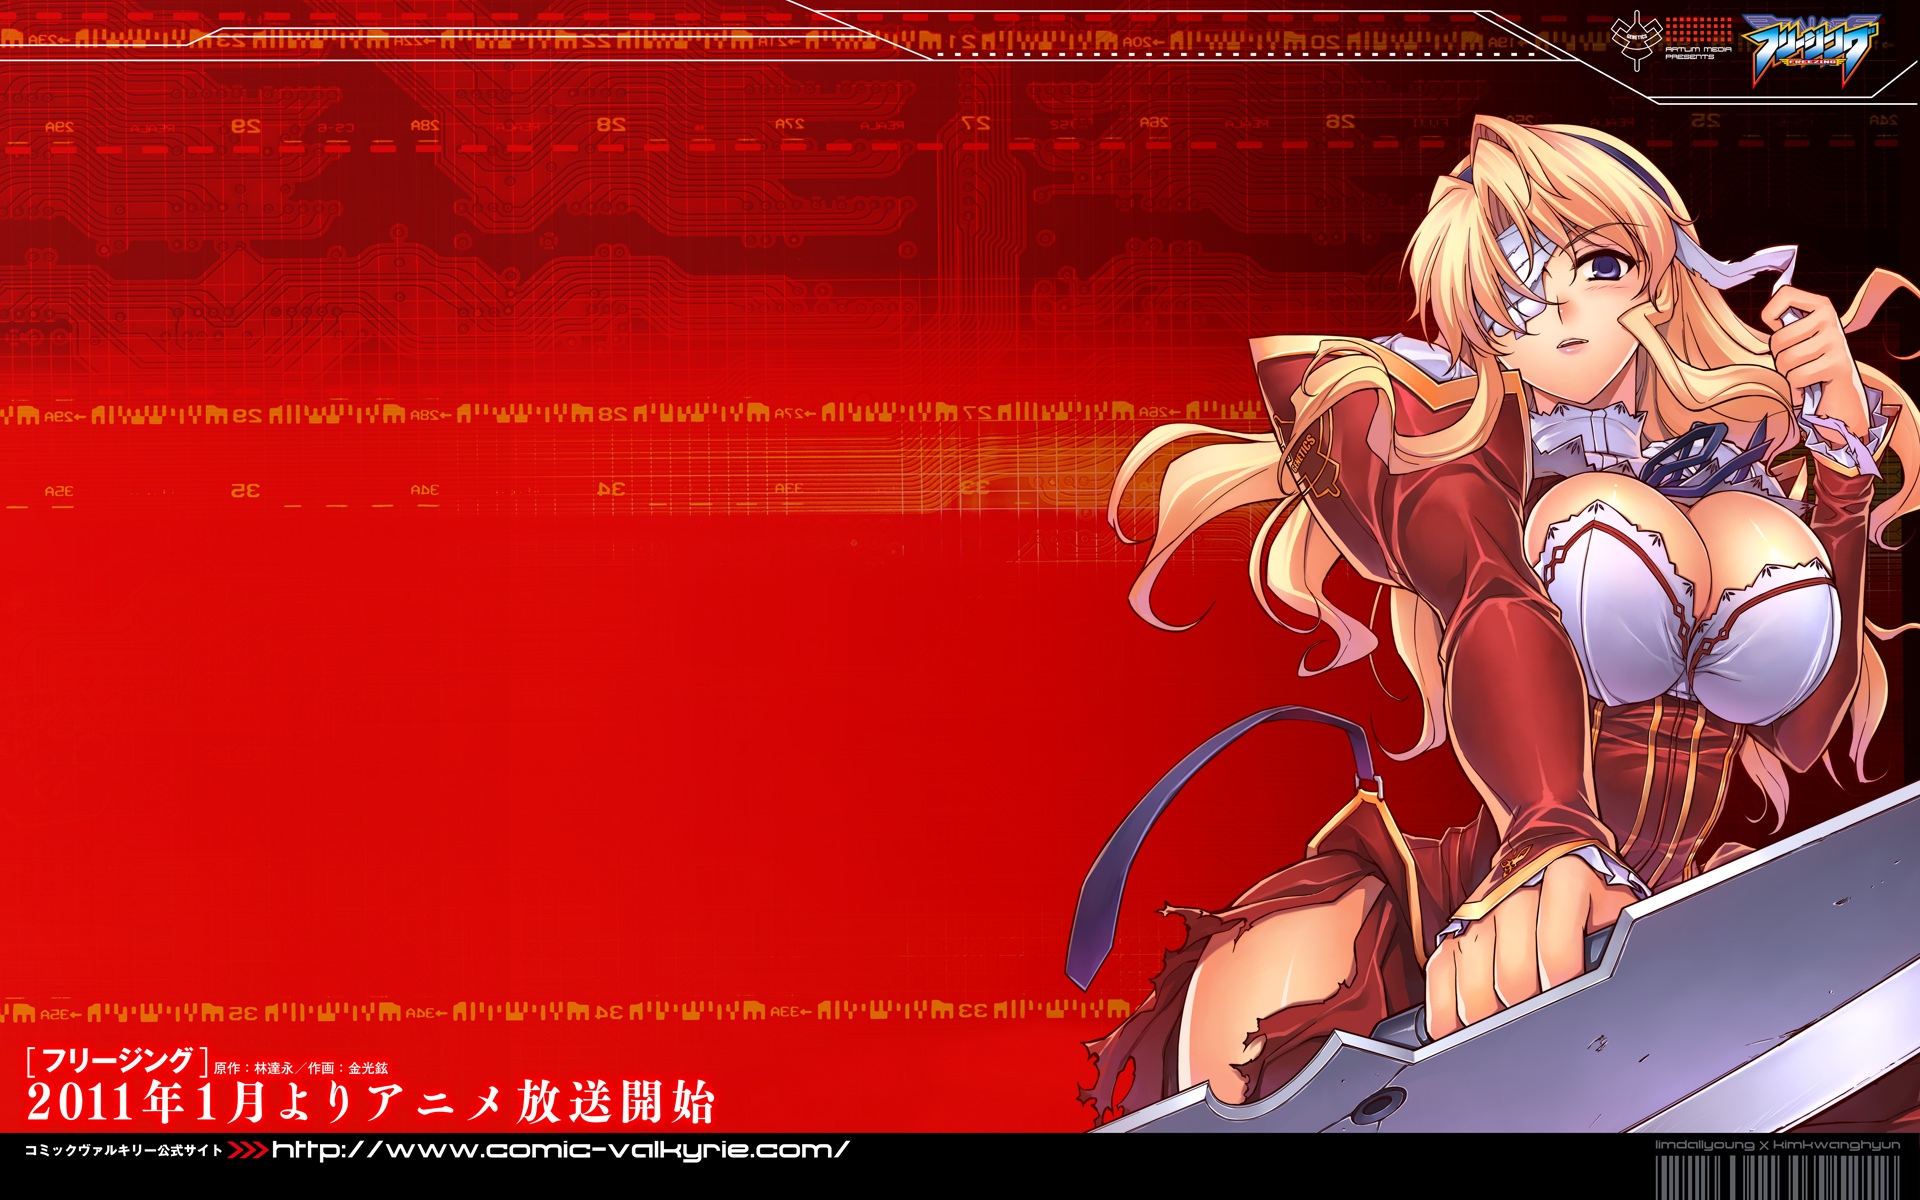 blonde_hair breasts bridget_satellizer cleavage eyepatch freezing kim_kwang-hyun red torn_clothes weapon